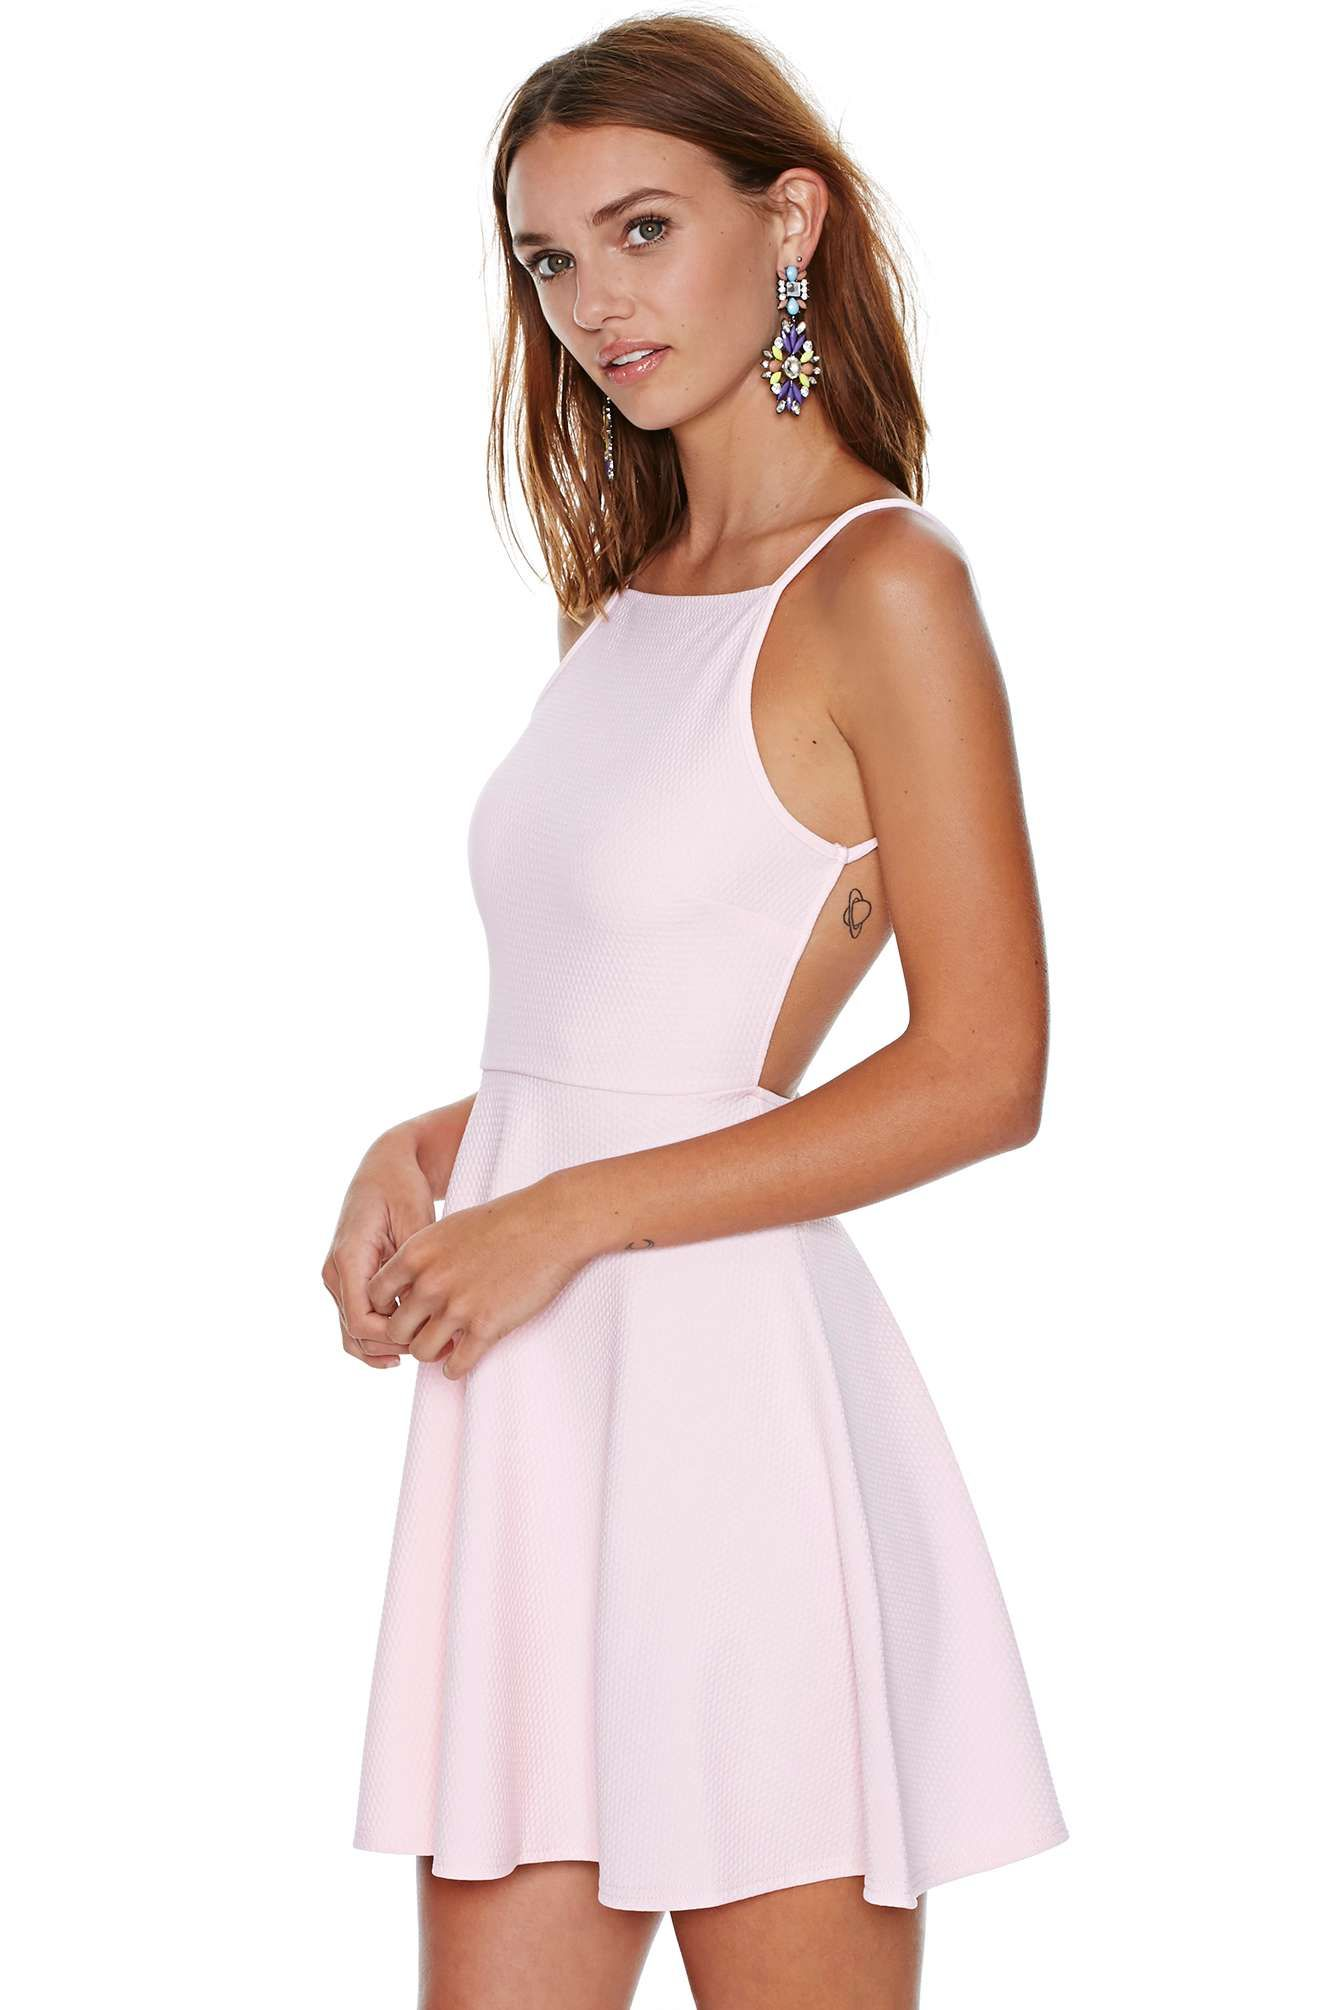 Oh My Love Back It Up Dress   Shop Clothes at Nasty Gal, $68.00. Ohh ...